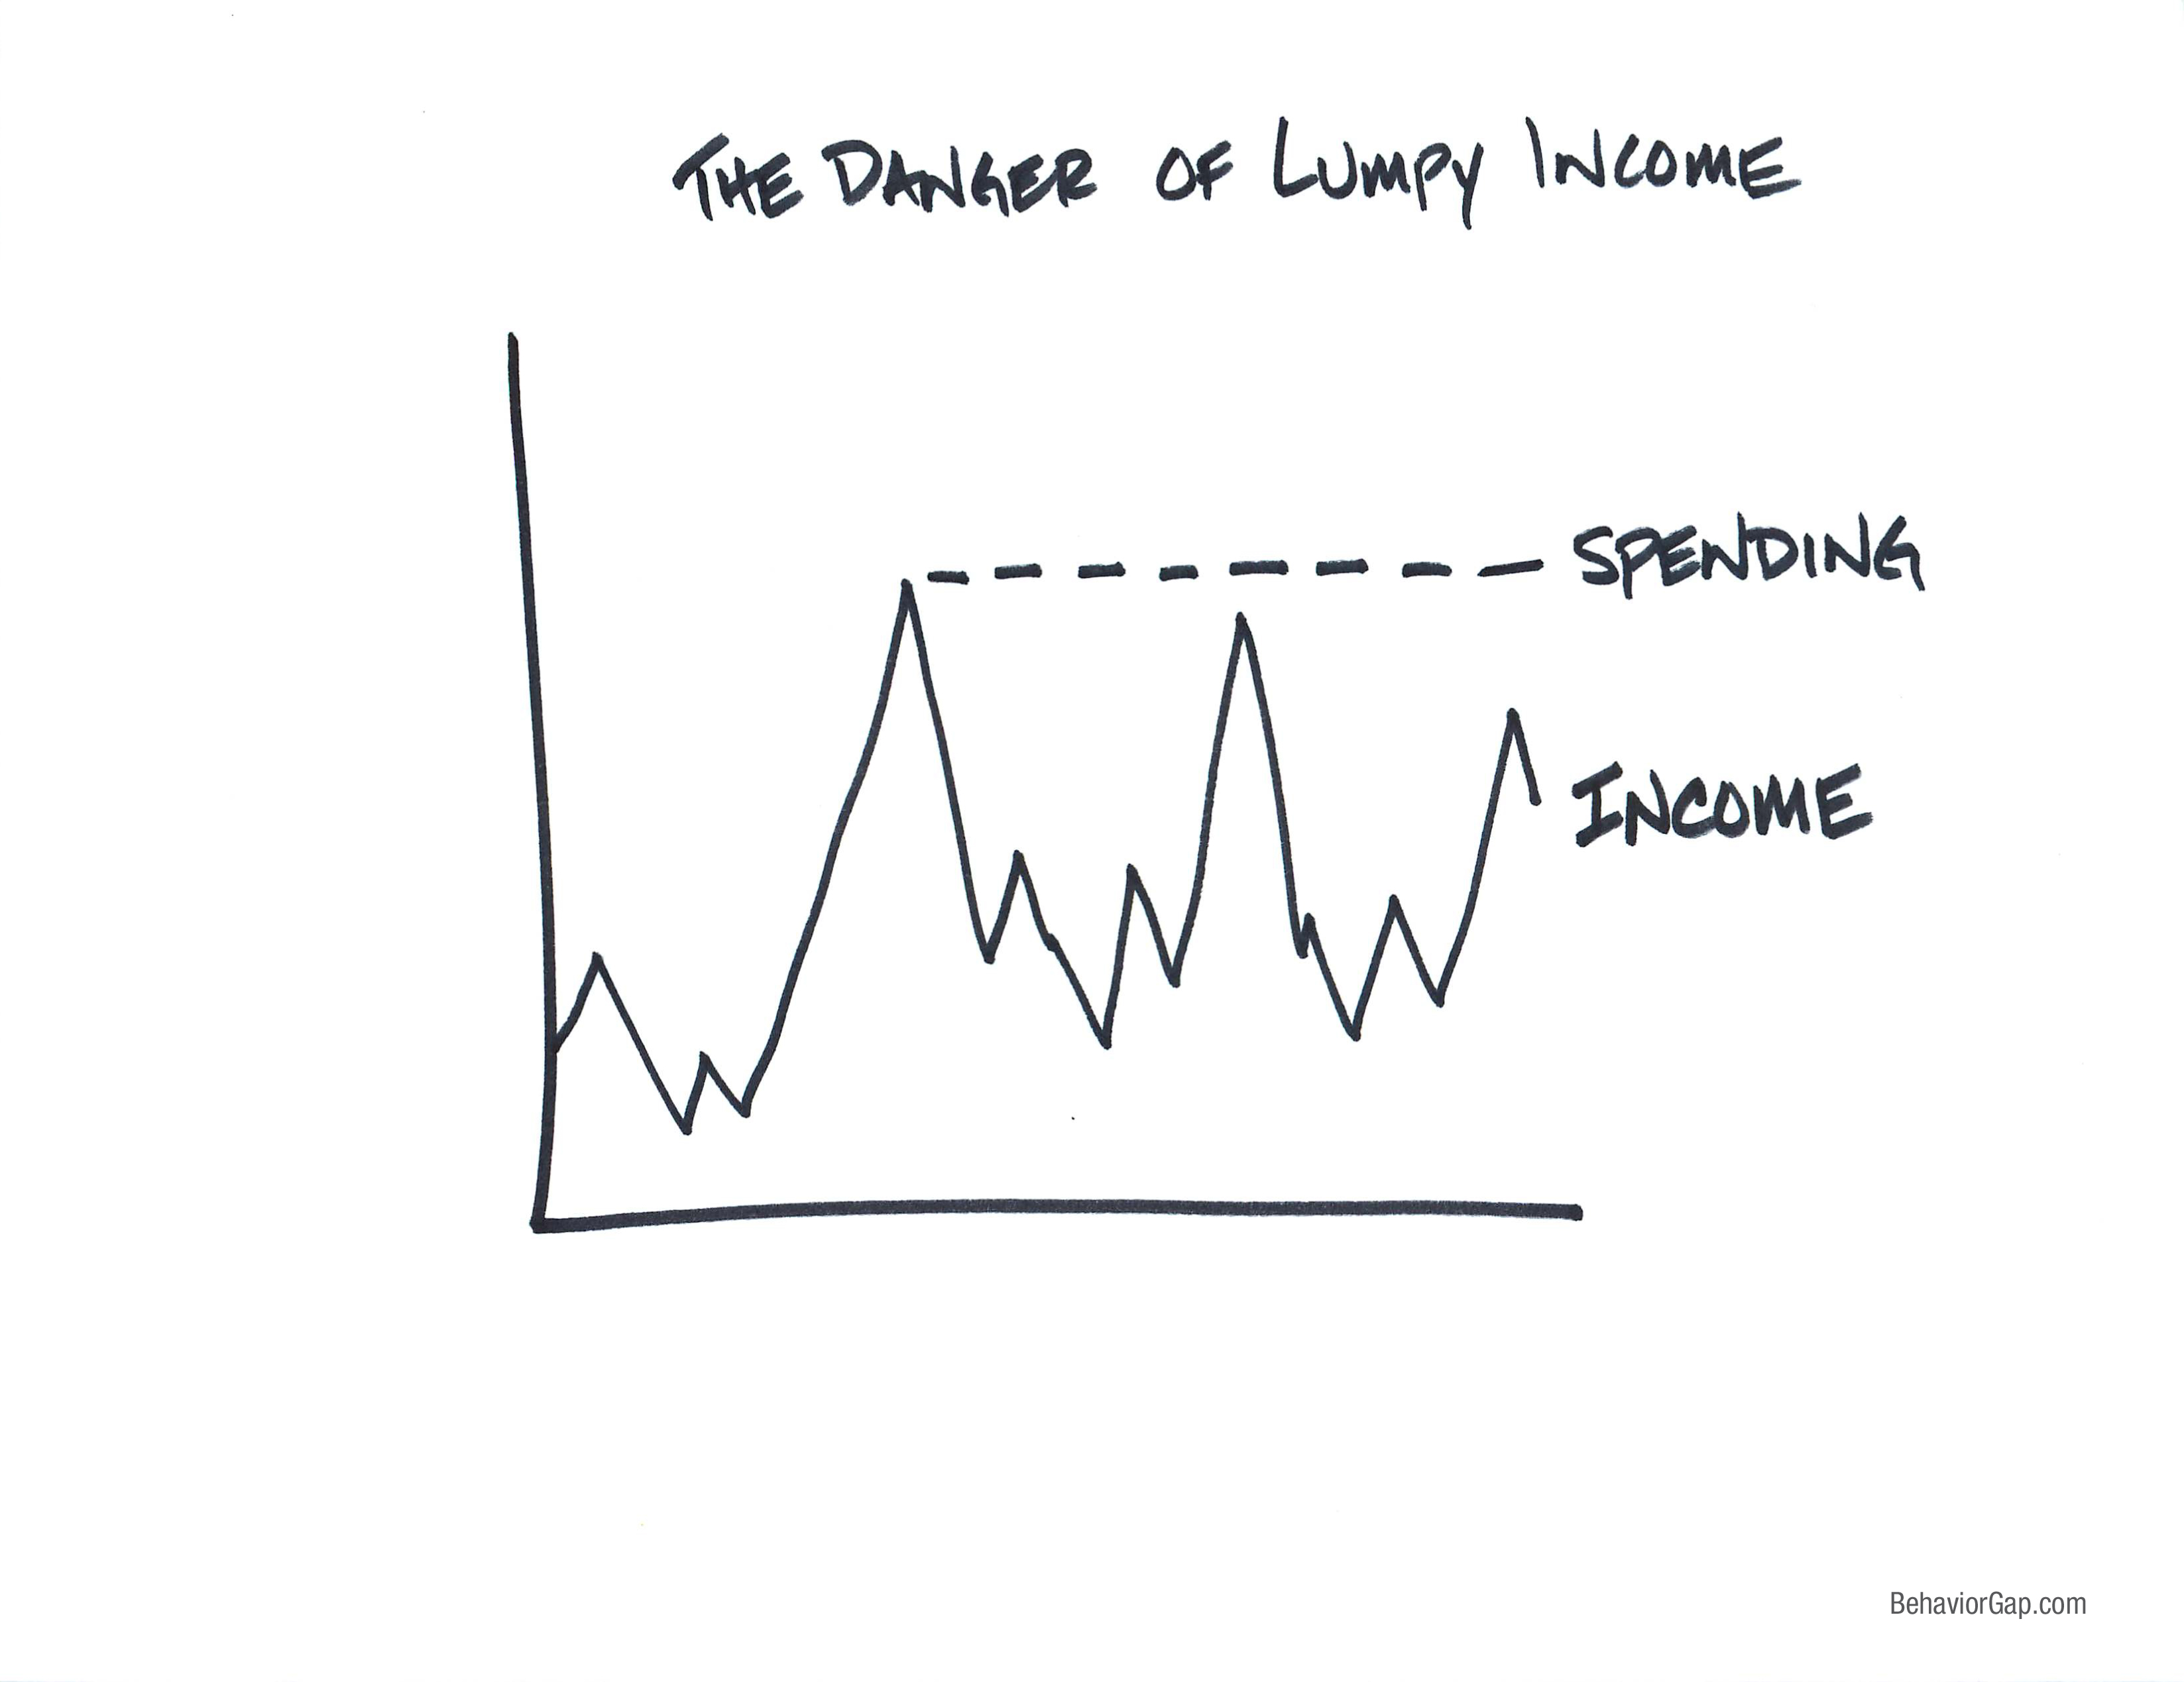 A lumpy income is dangerous